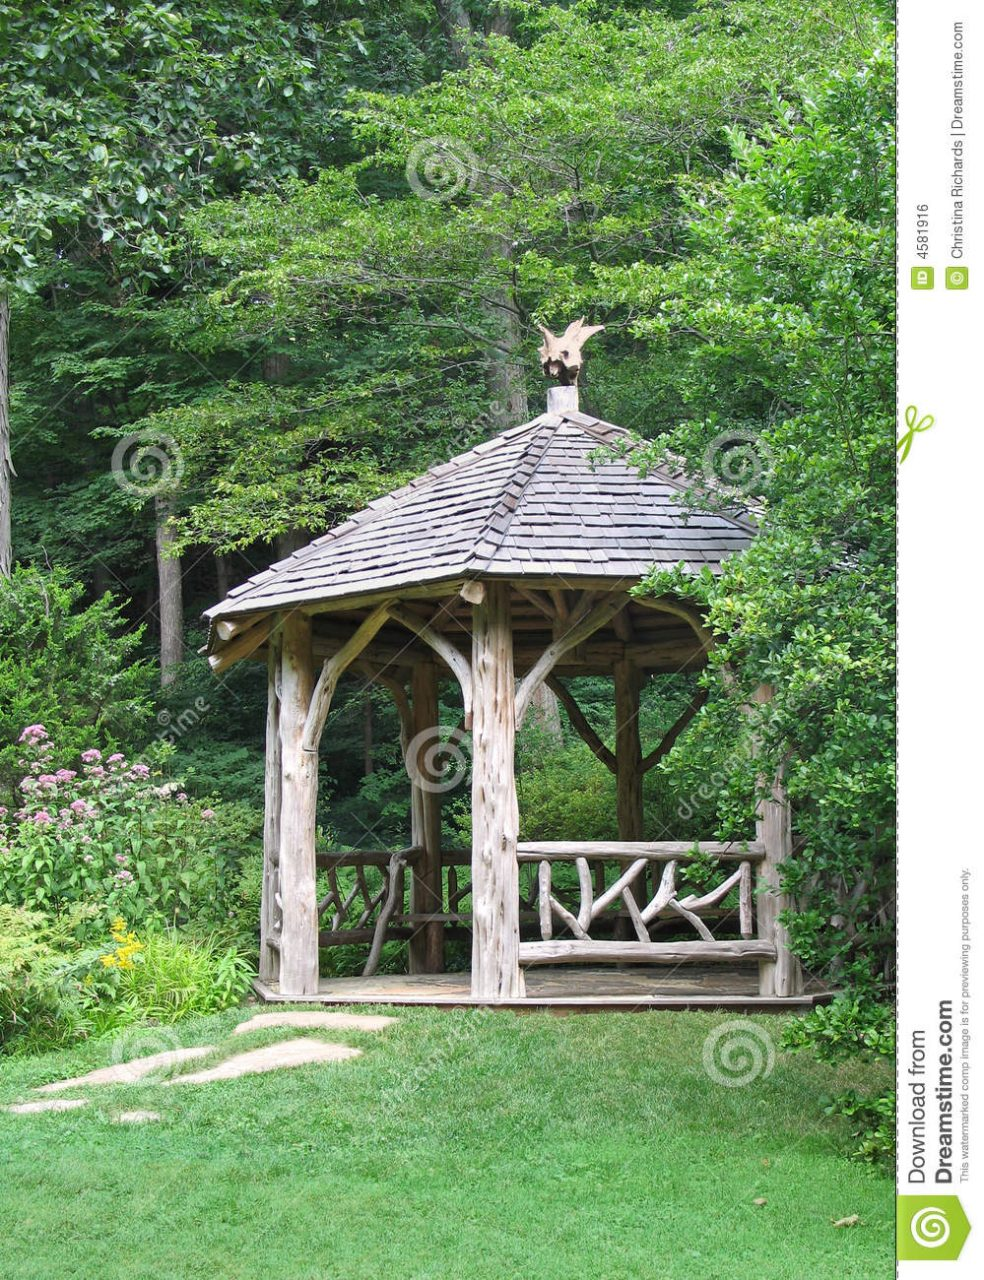 Rustic Gazebo Stock Photo Image Of Nature Garden Peaceful 4581916